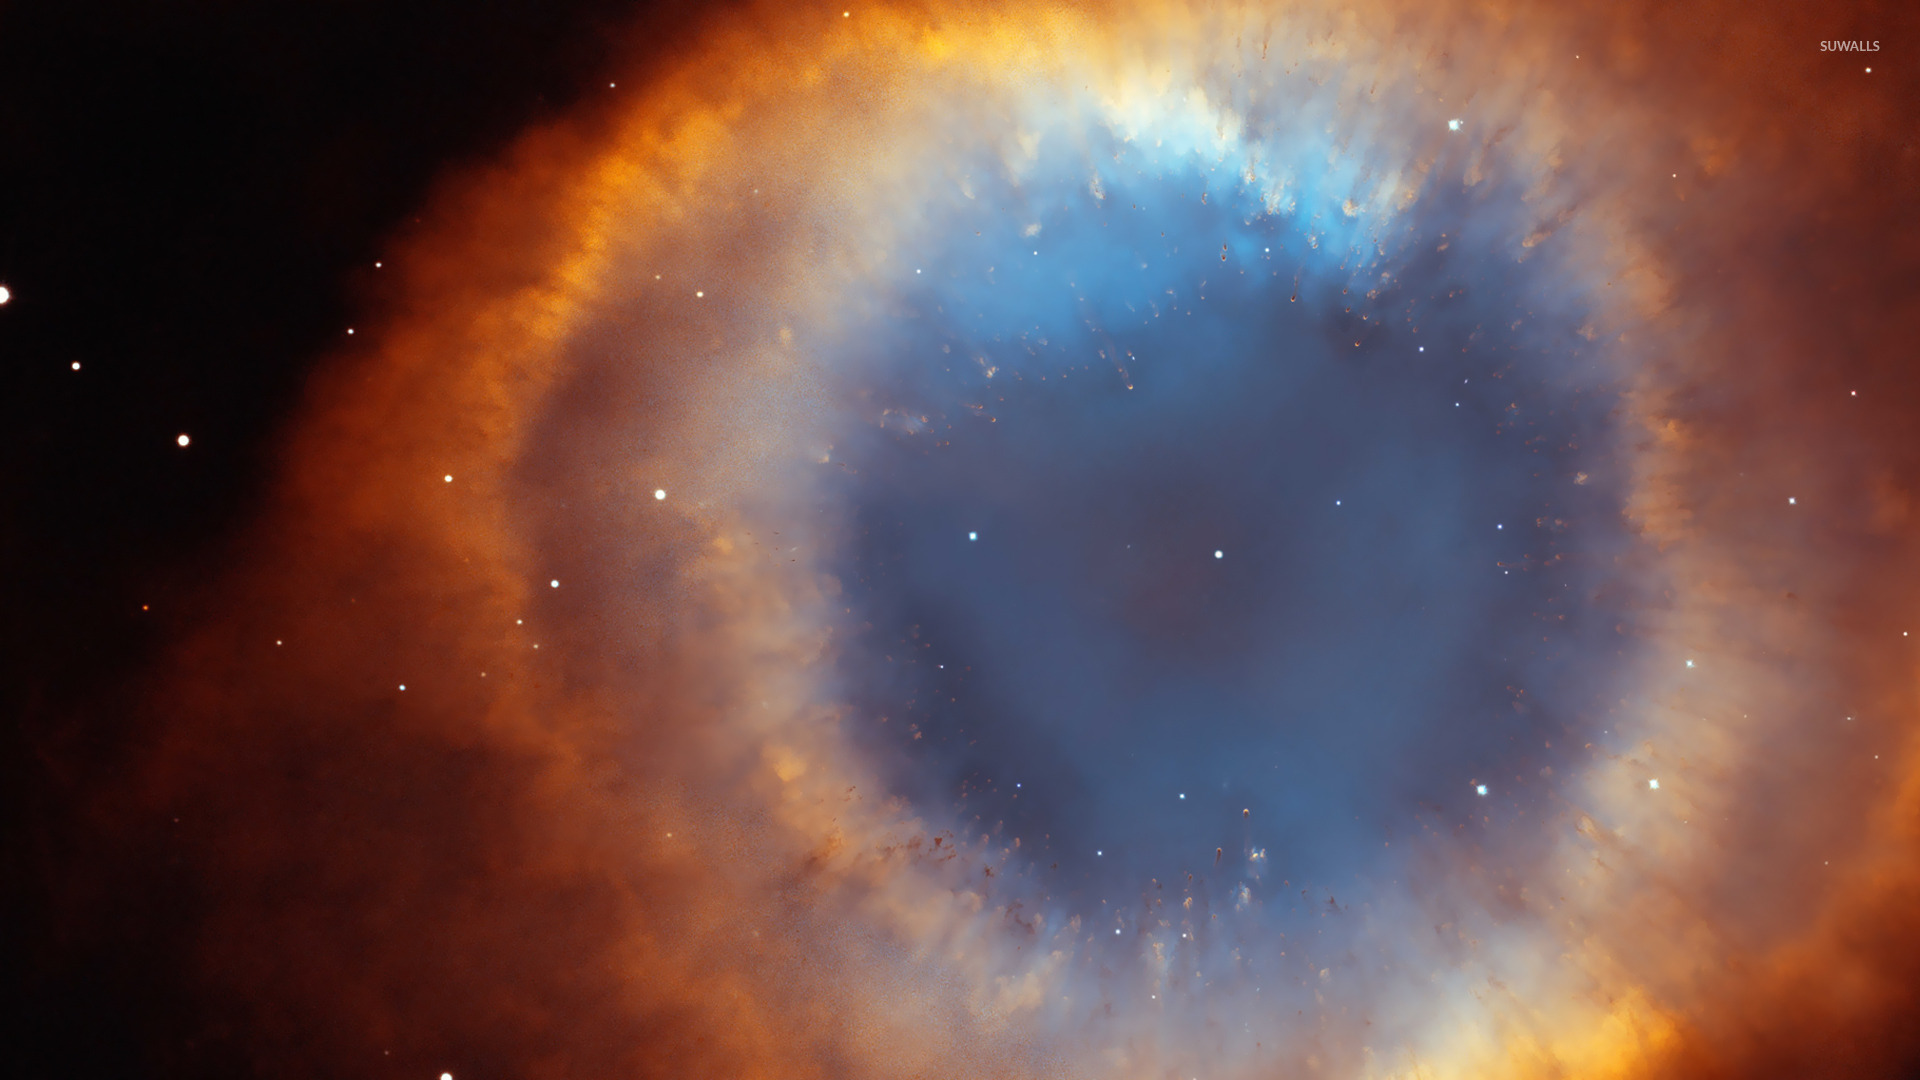 Helix Nebula wallpaper   Space wallpapers   19118 1280x800